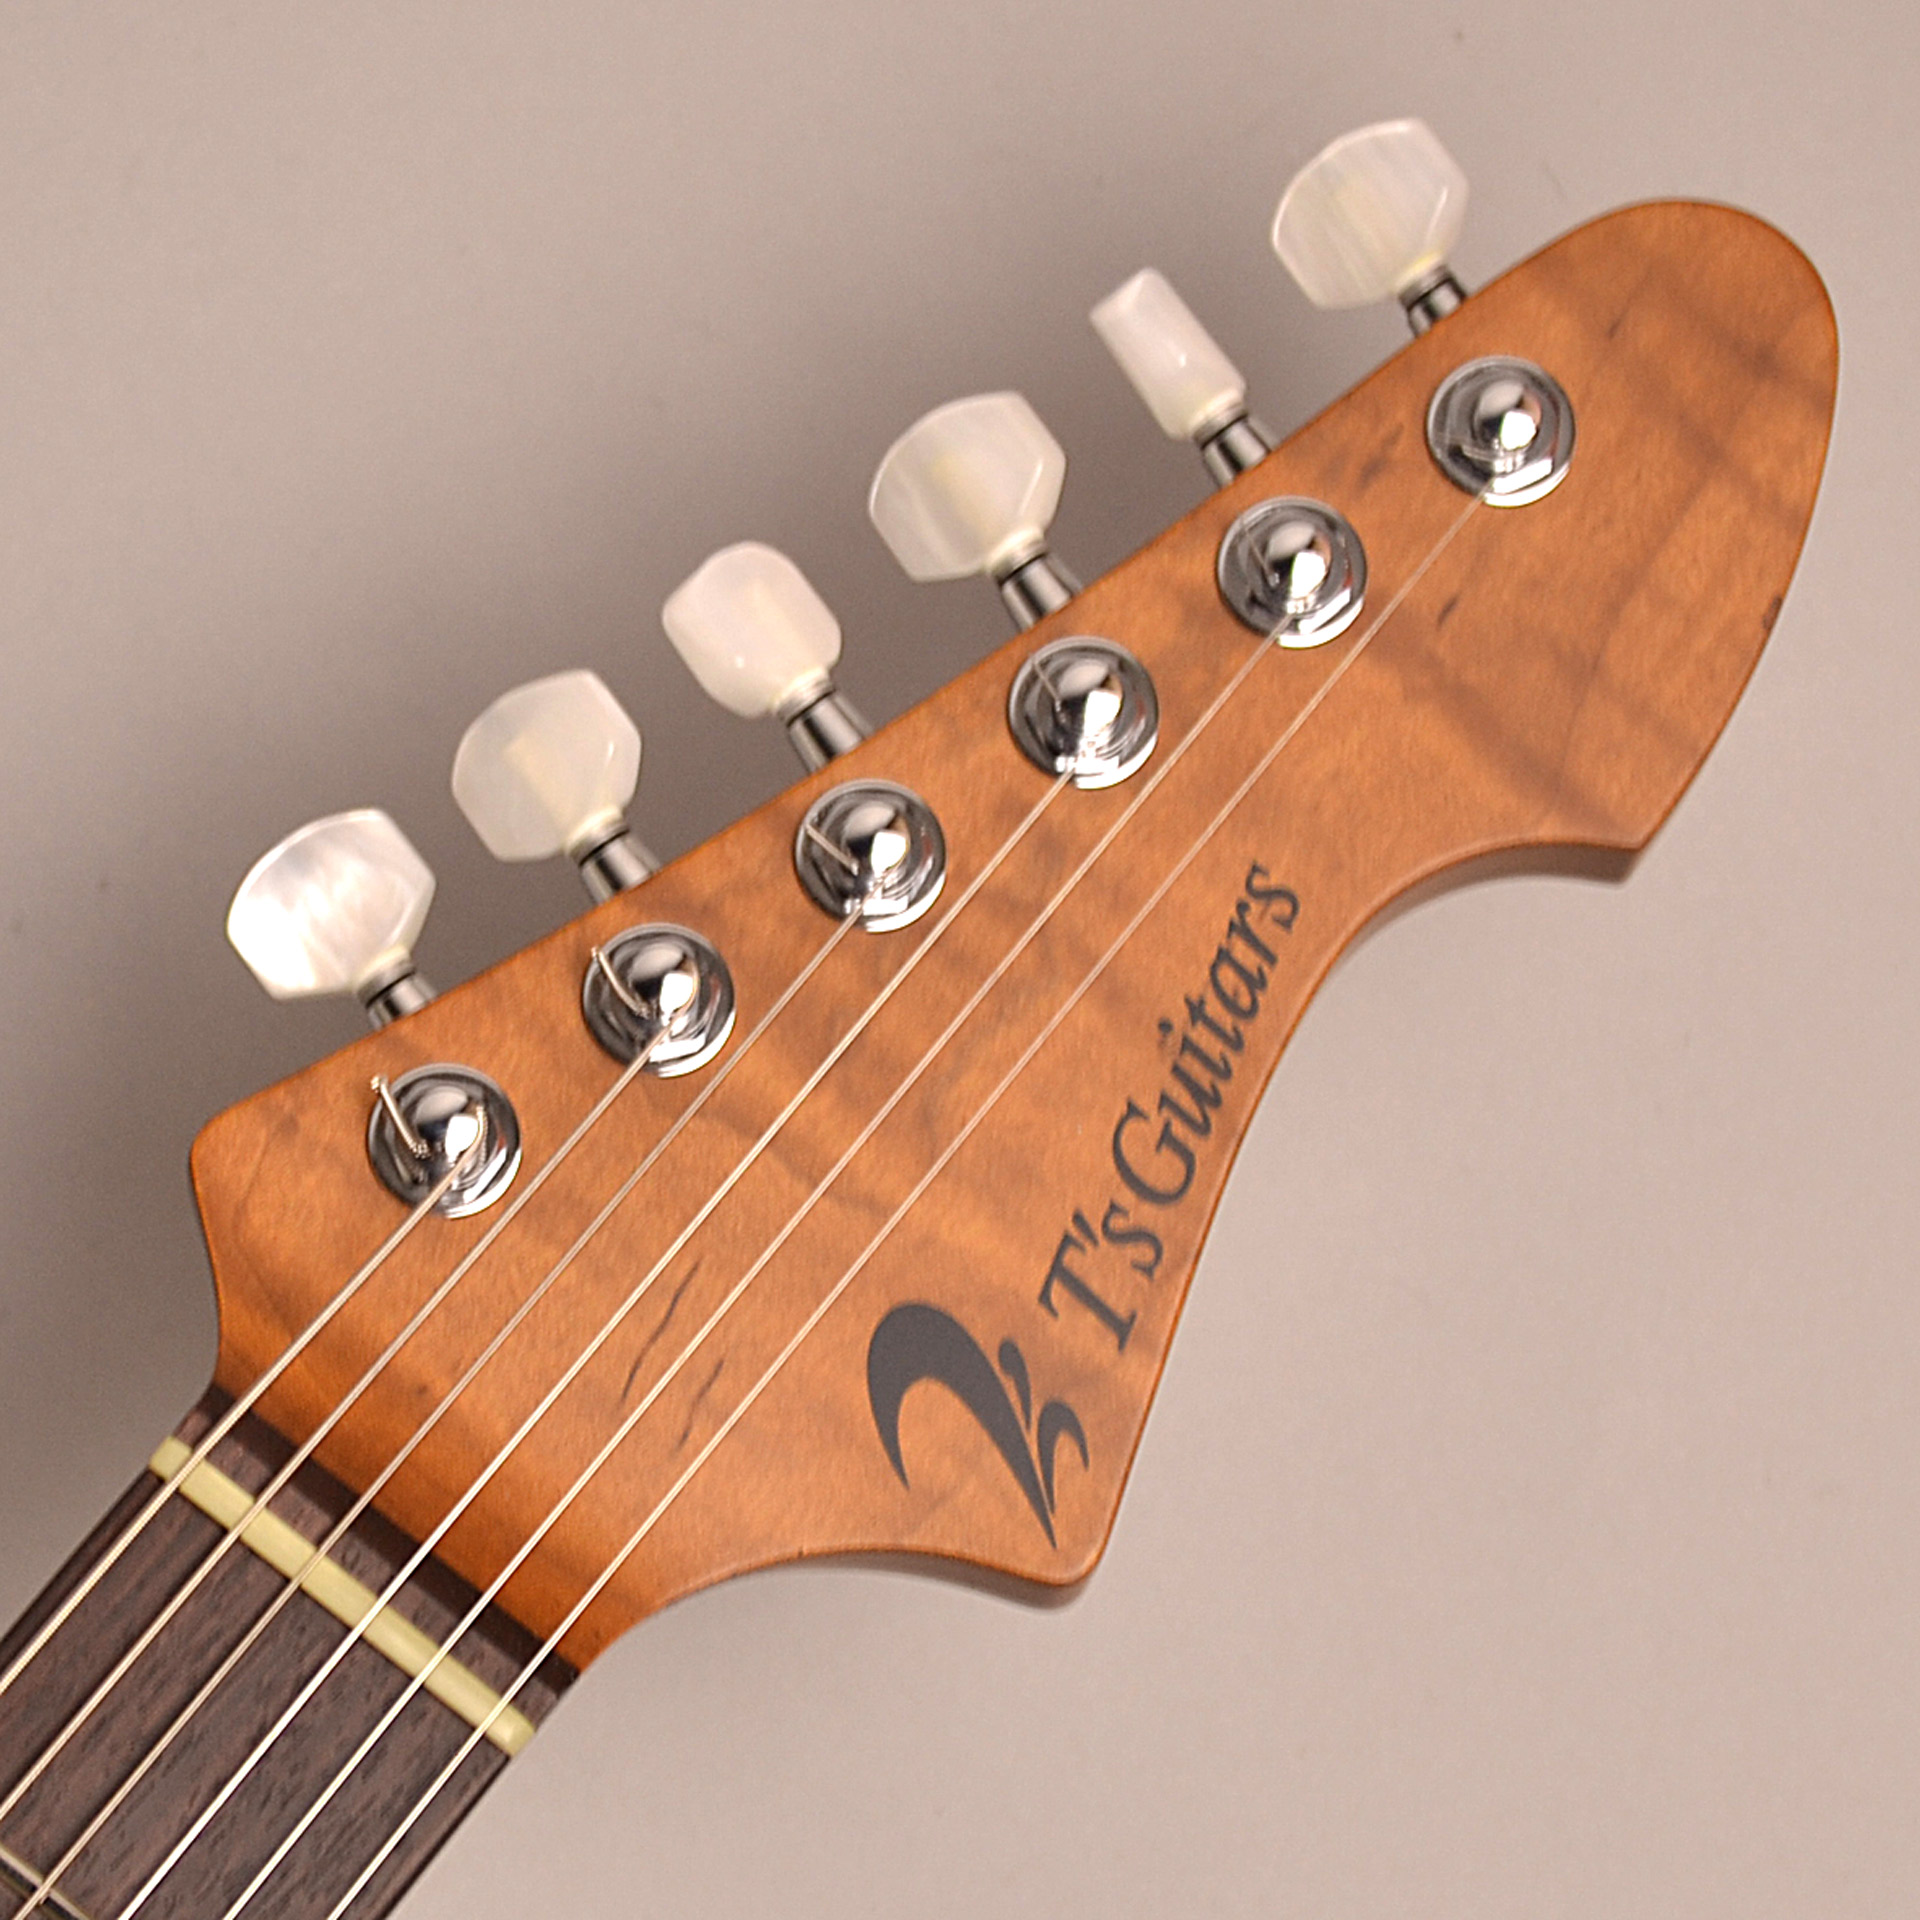 DST-Classic24F Roasted Flame Maple Neckの全体画像(縦)